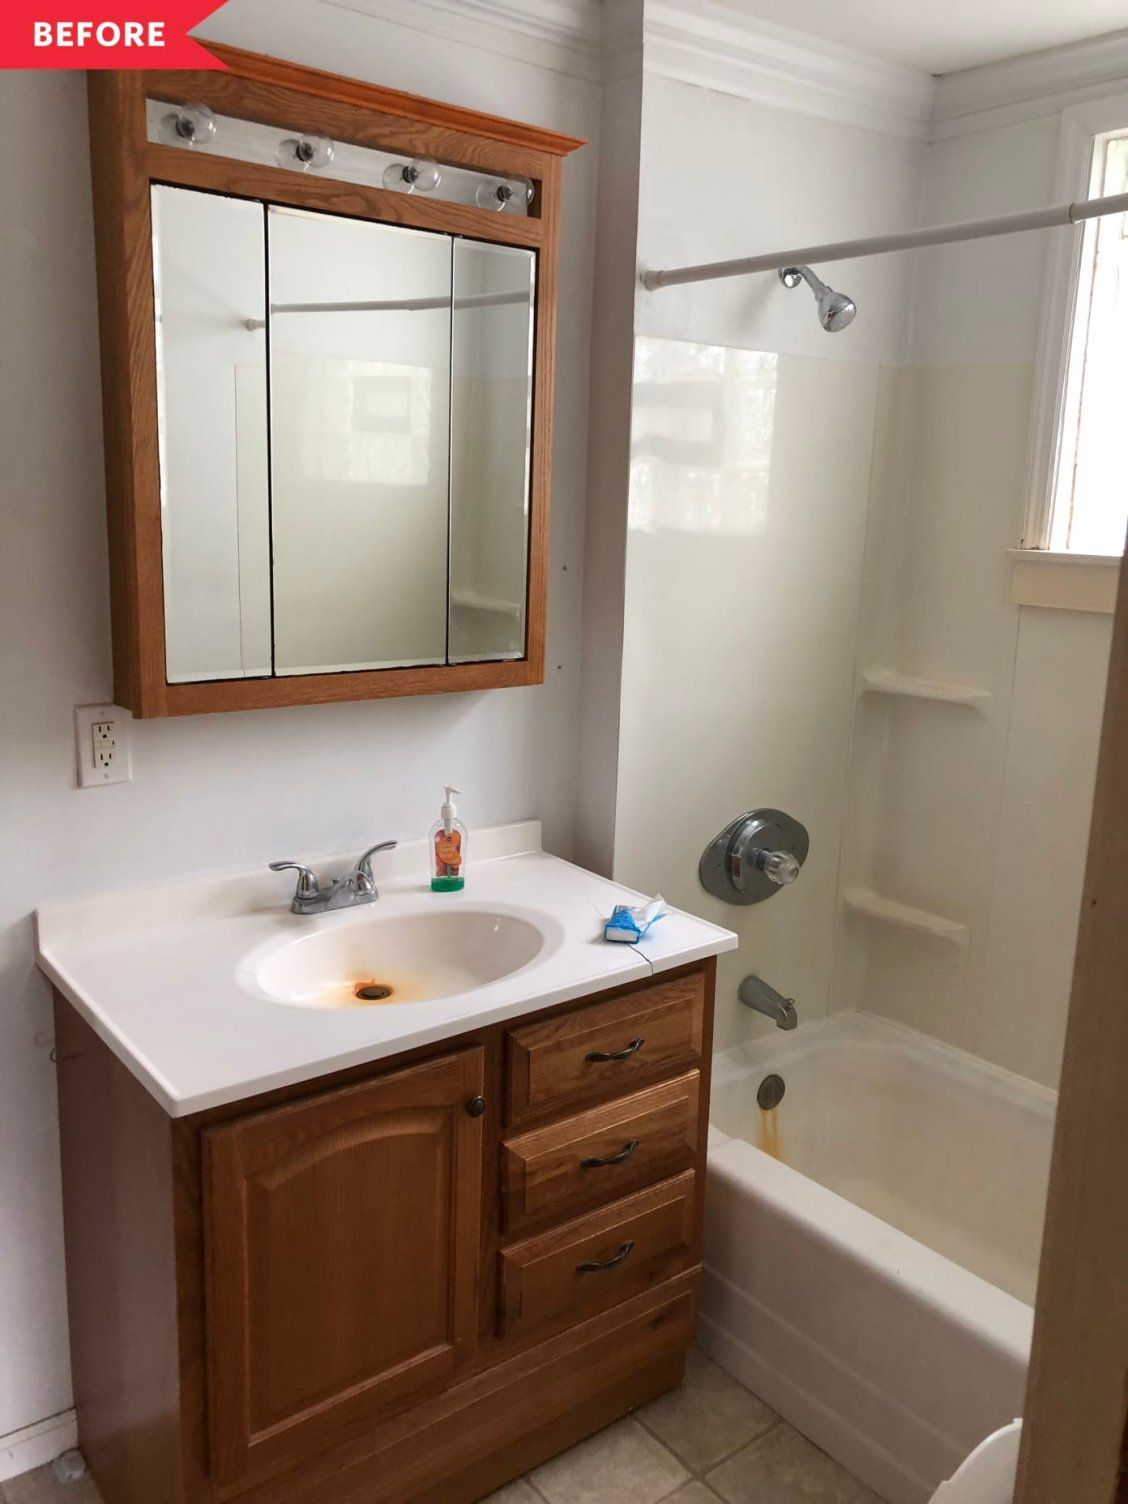 Before And After This Gorgeous Scandi Inspired Bathroom Redo Only Cost 500 Bathroom Redo Bathroom Interior Design Bathroom Design